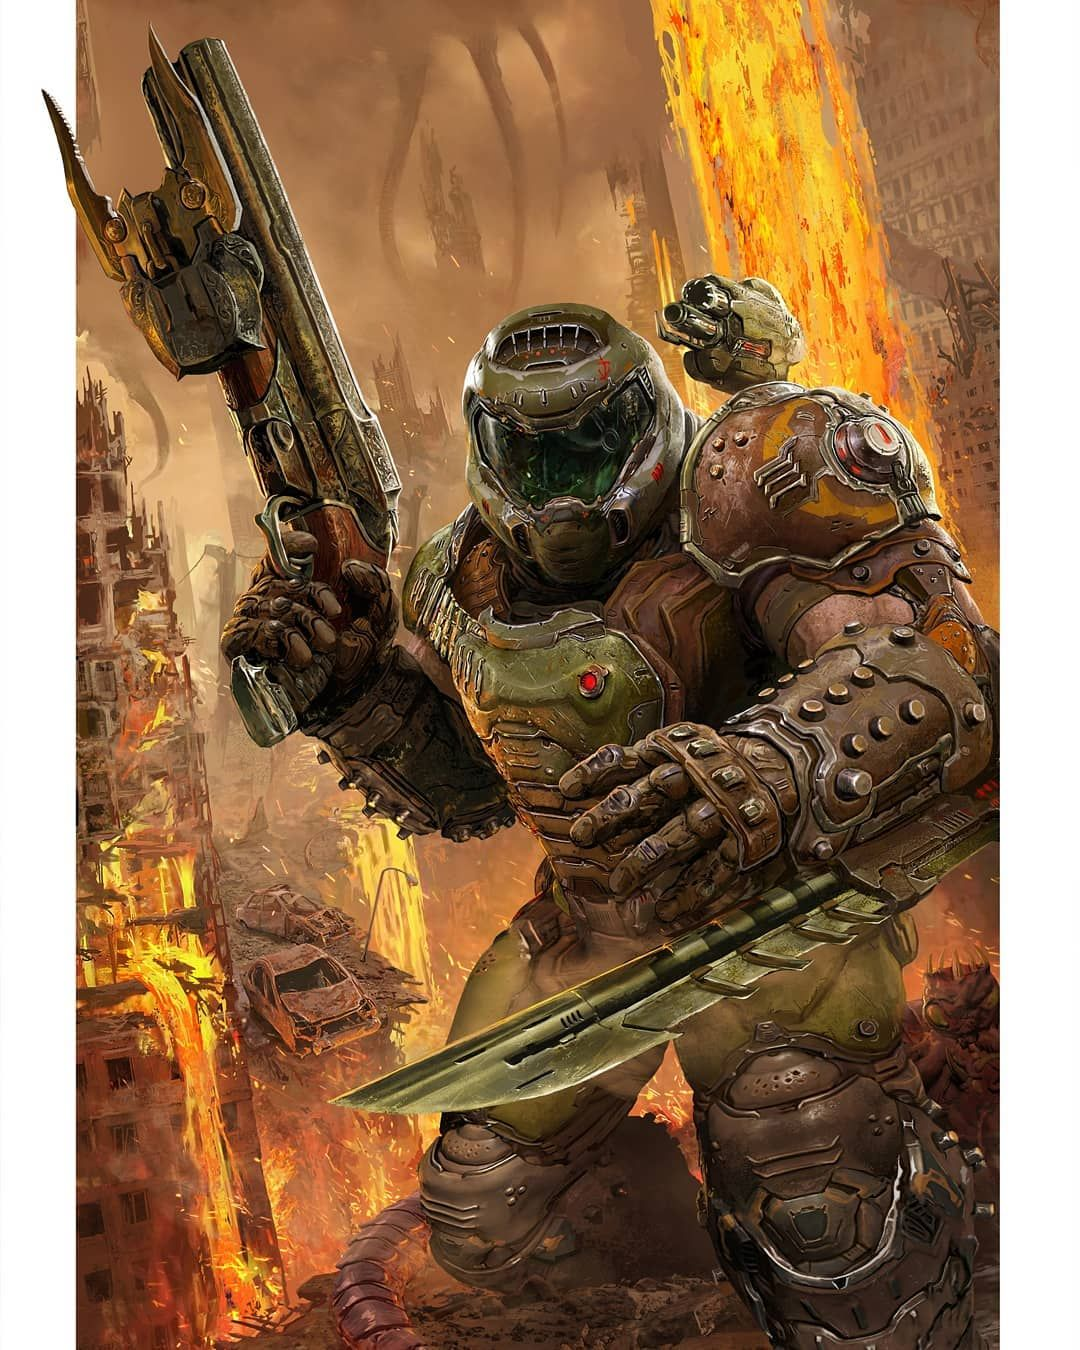 Doom Community On Instagram Amazing Art By Harryosbornart It